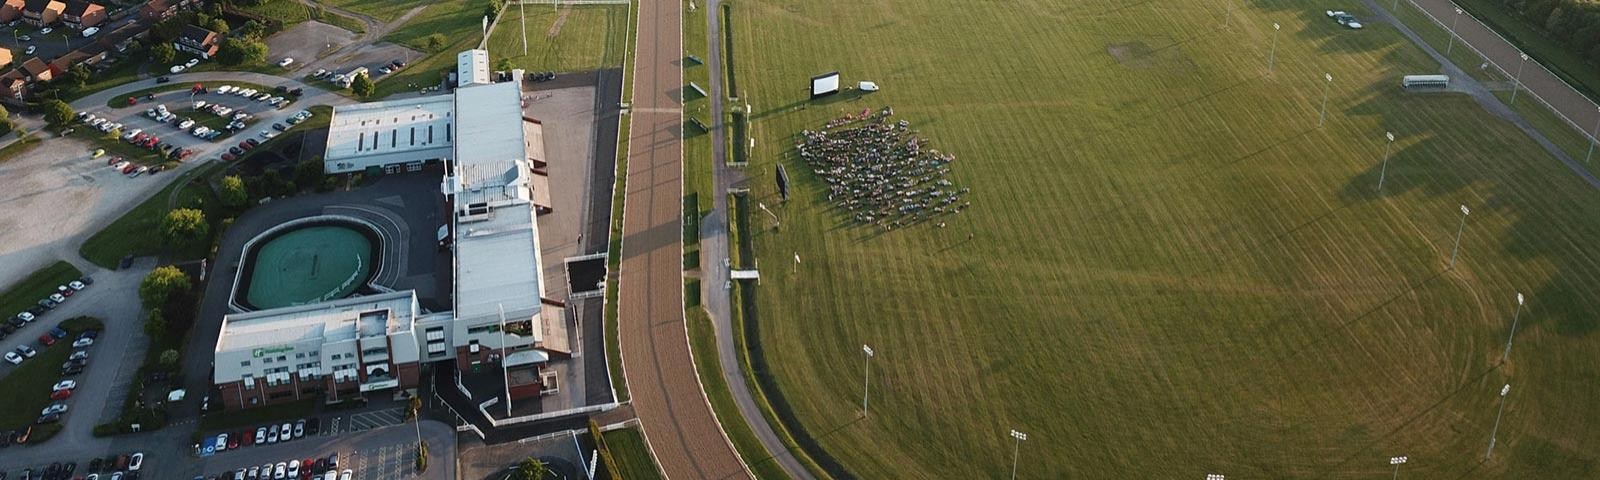 An aerial view of Wolverhampton Racecourse